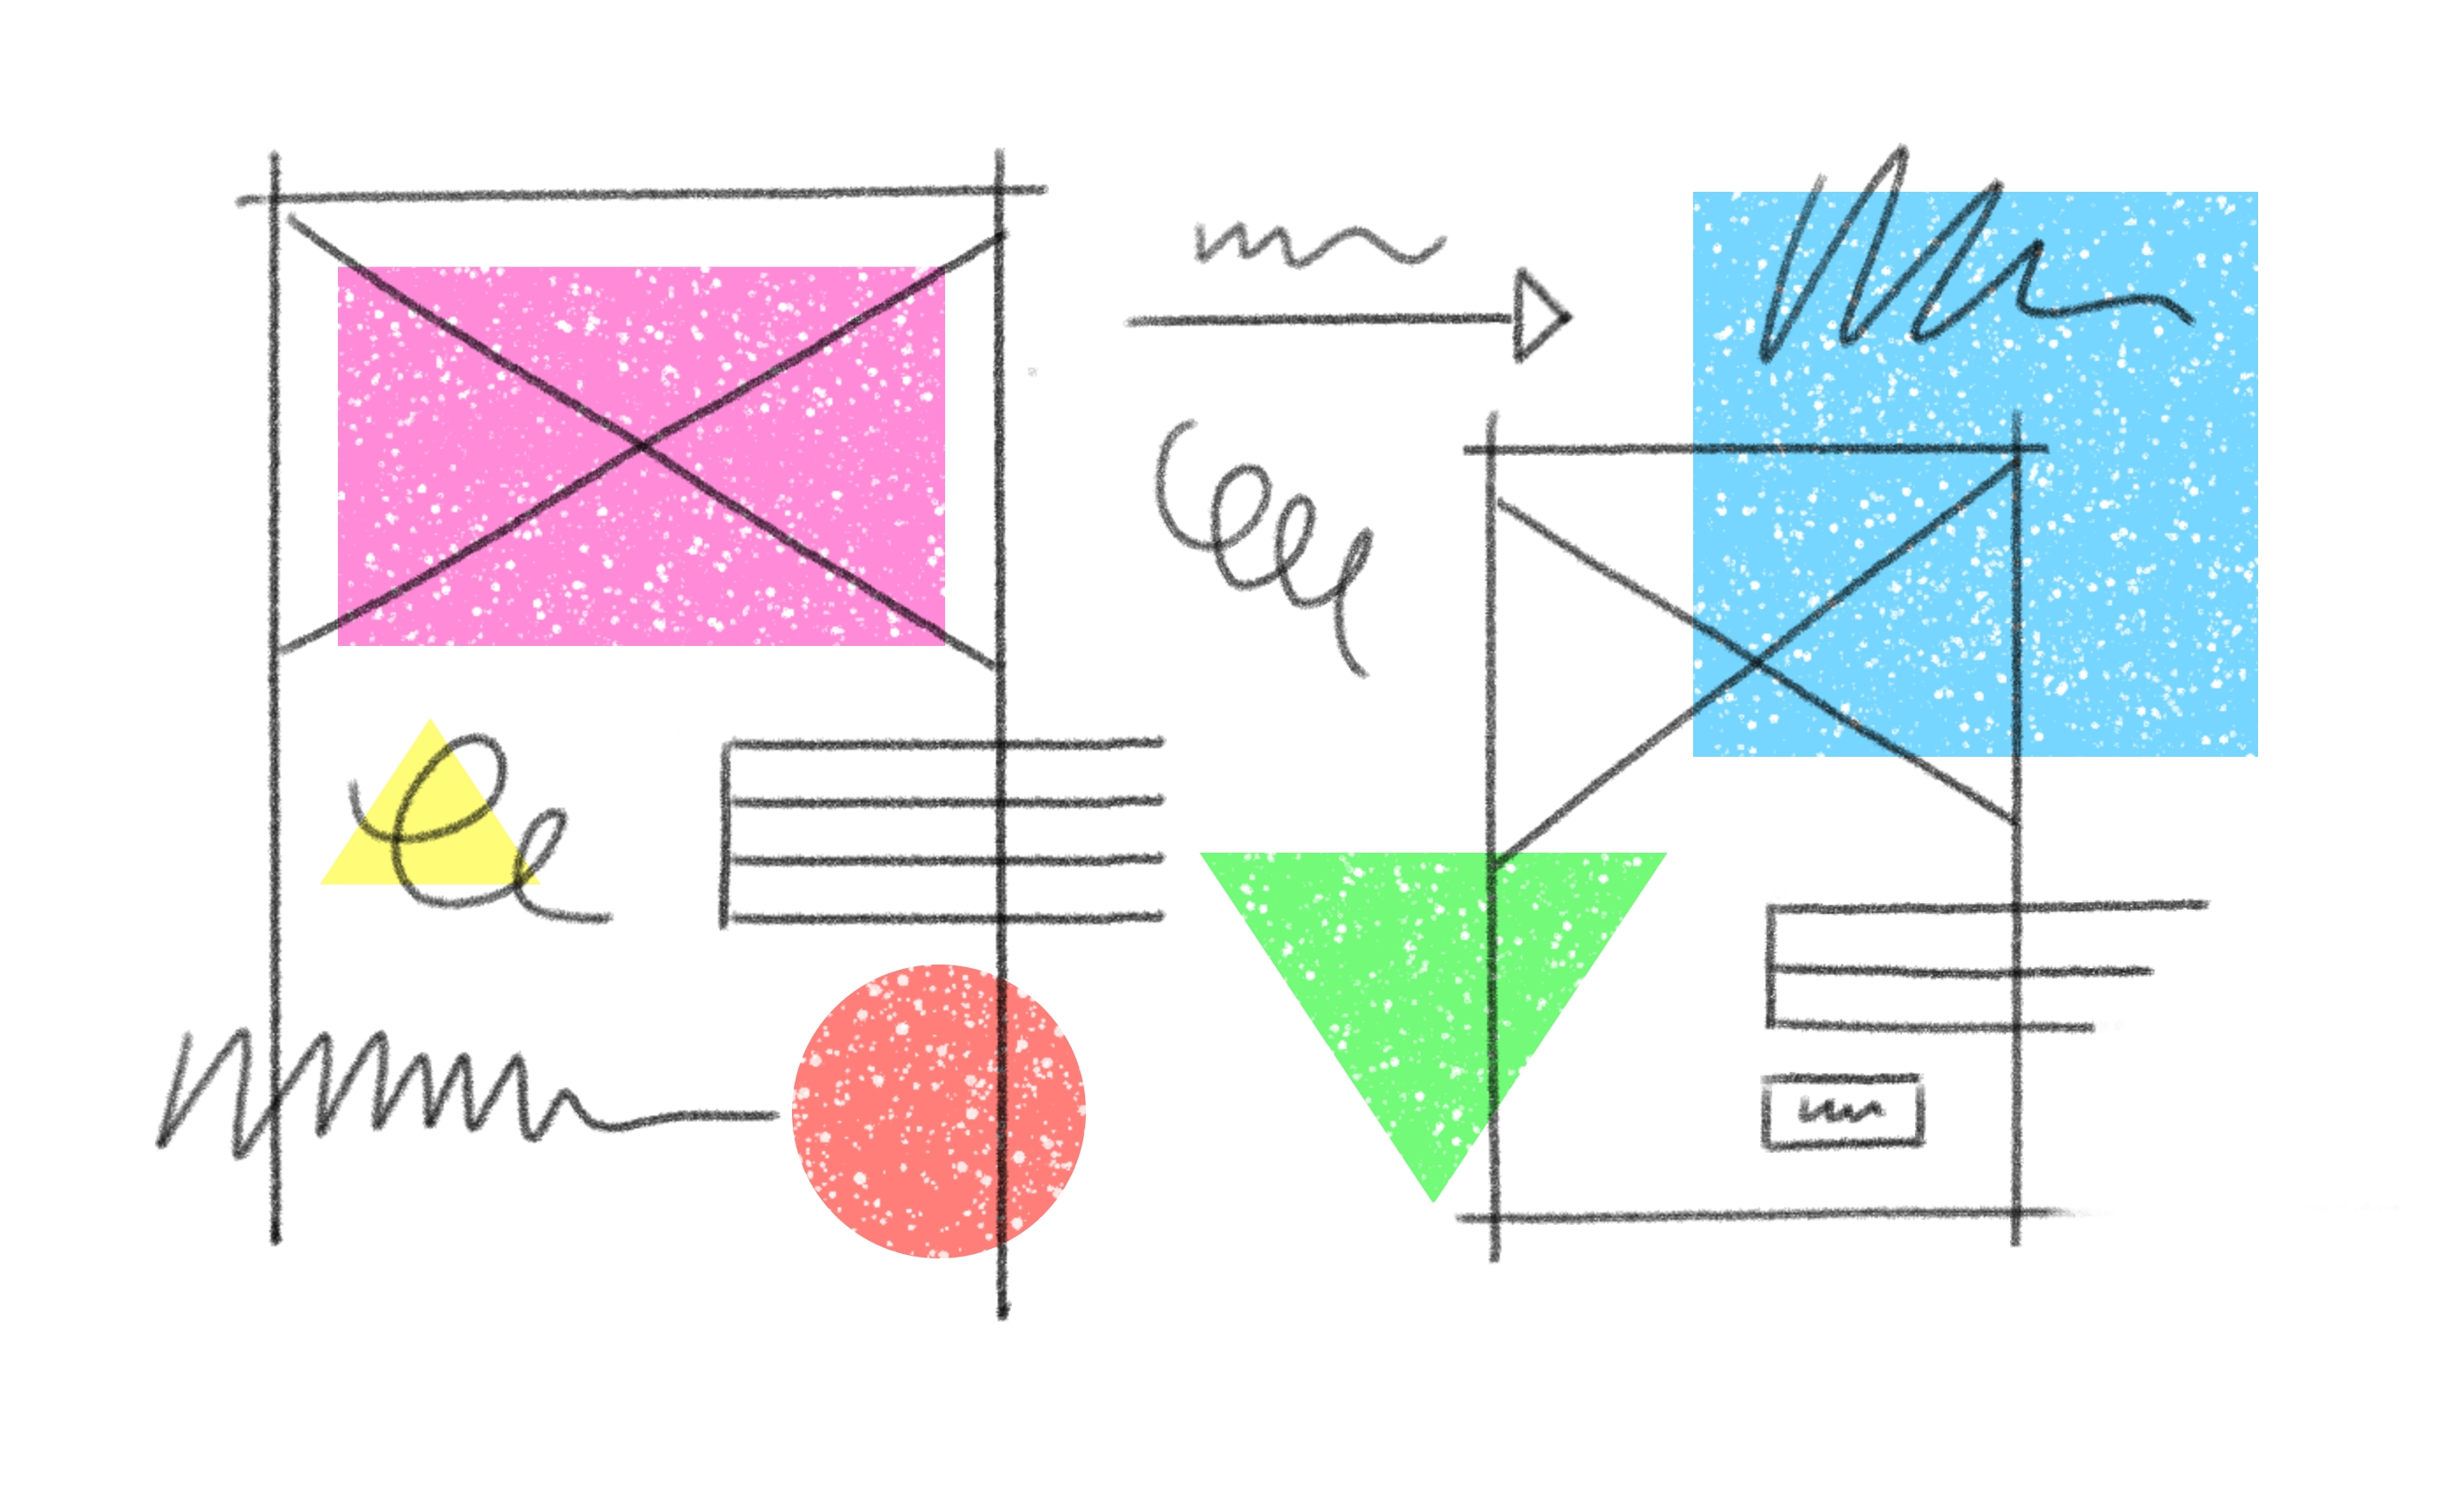 Abstract illustration of a storyboard